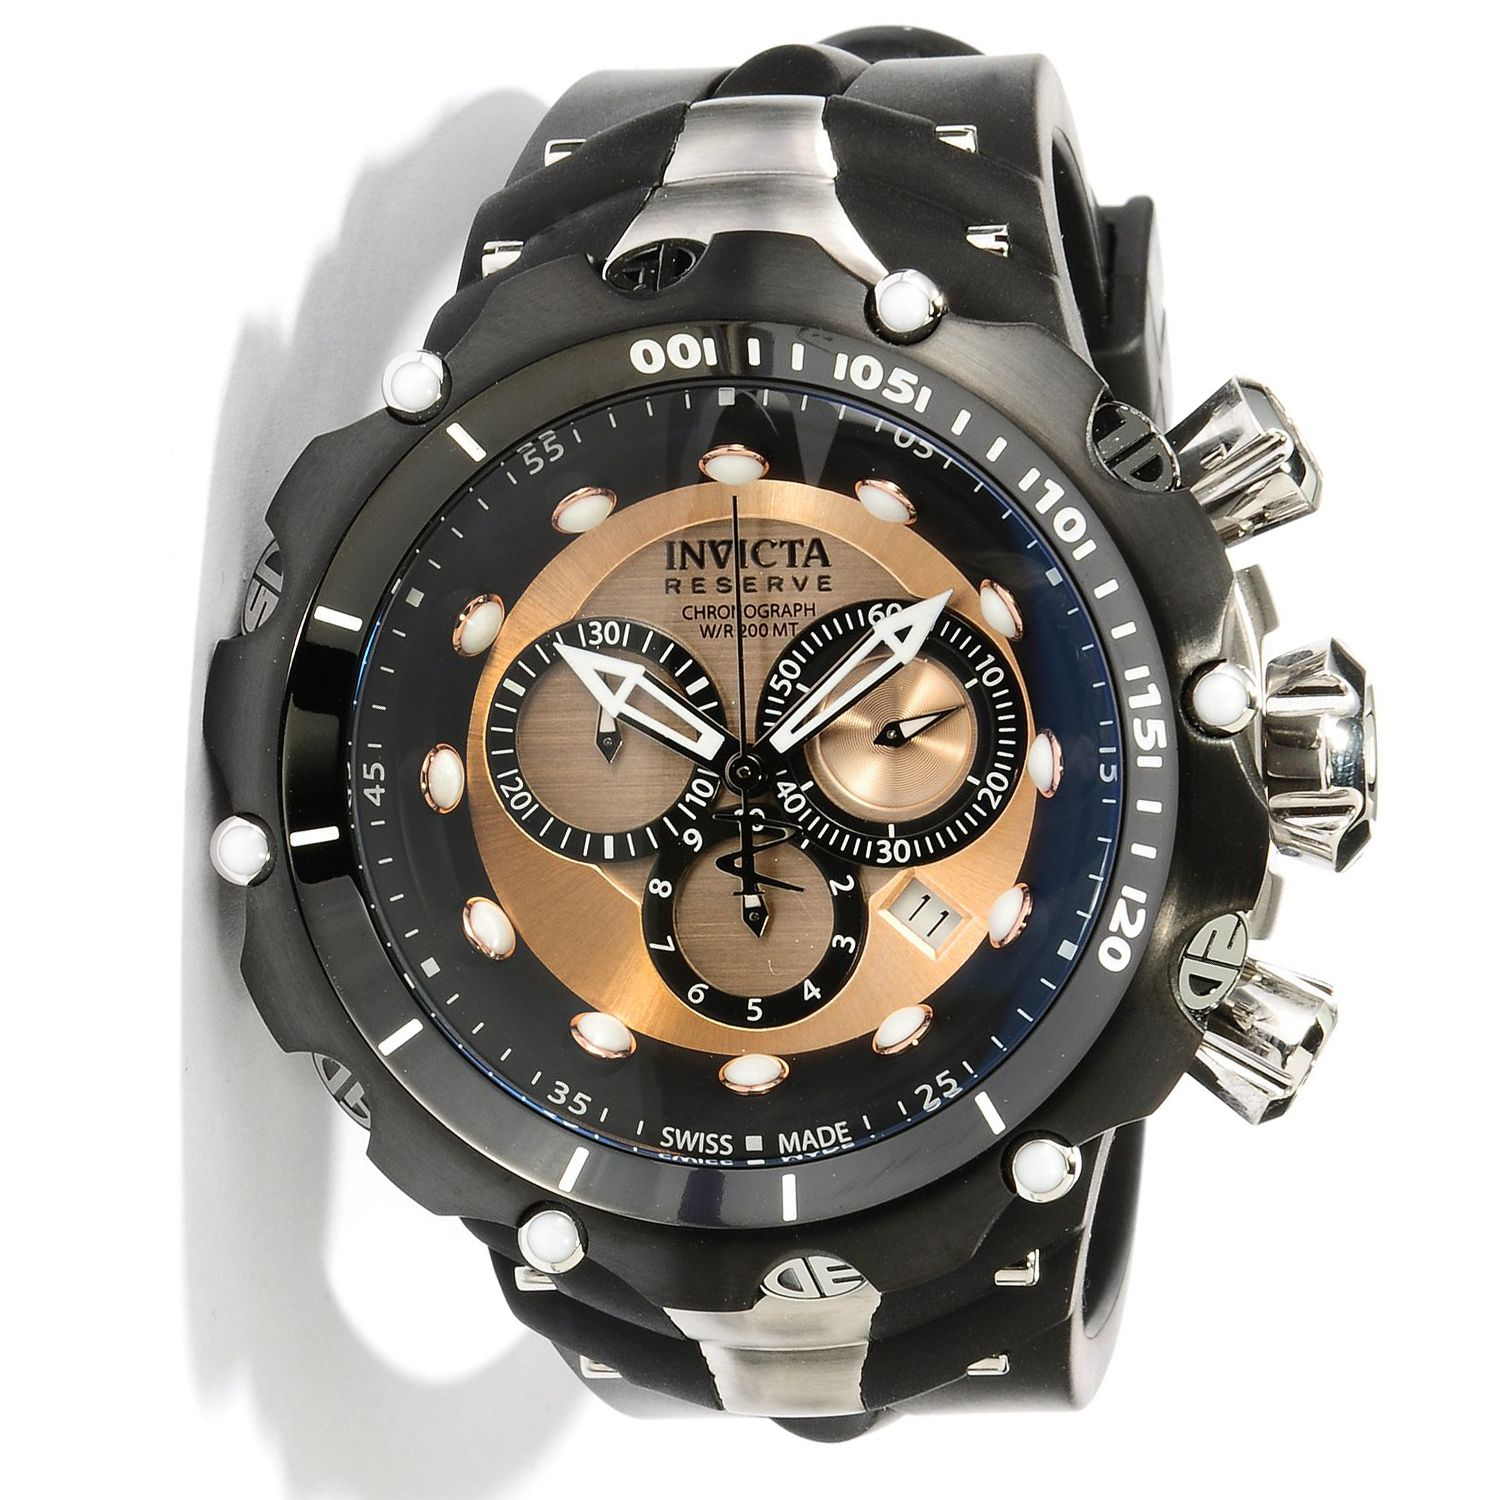 6c8d2acf631 invicta venom watches for men